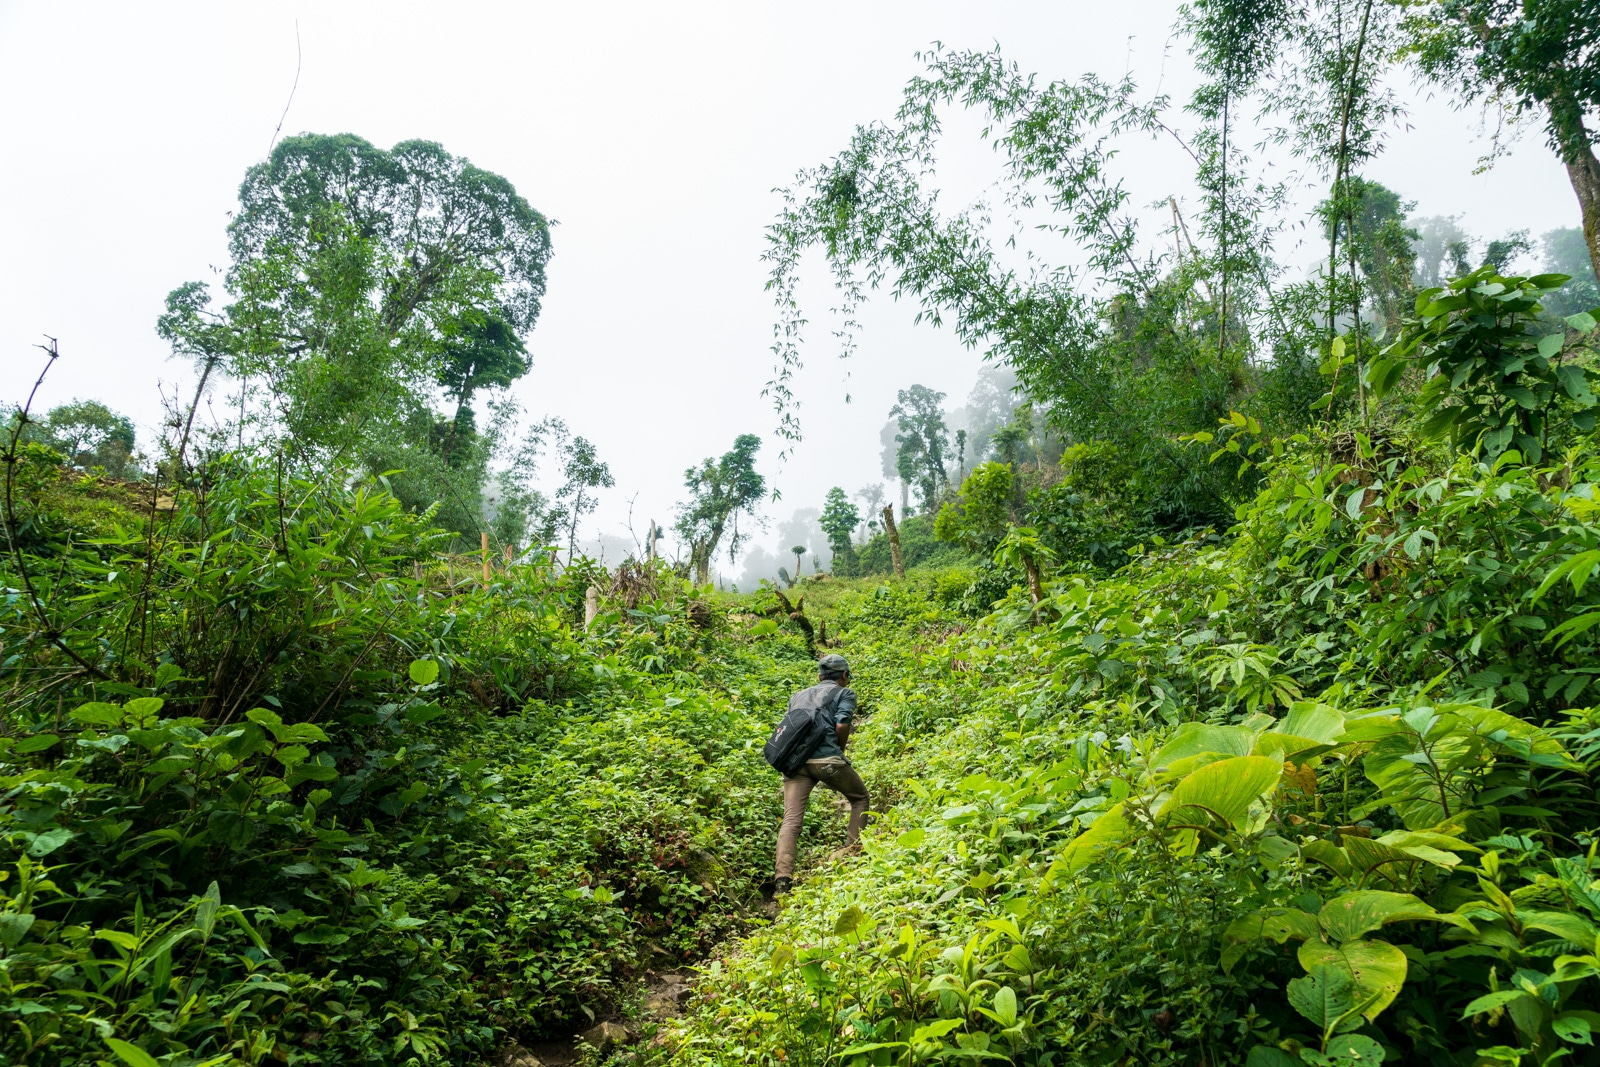 What to pack for monsoon travel - Walking in the jungles of Longwa, Nagaland, India - Lost With Purpose